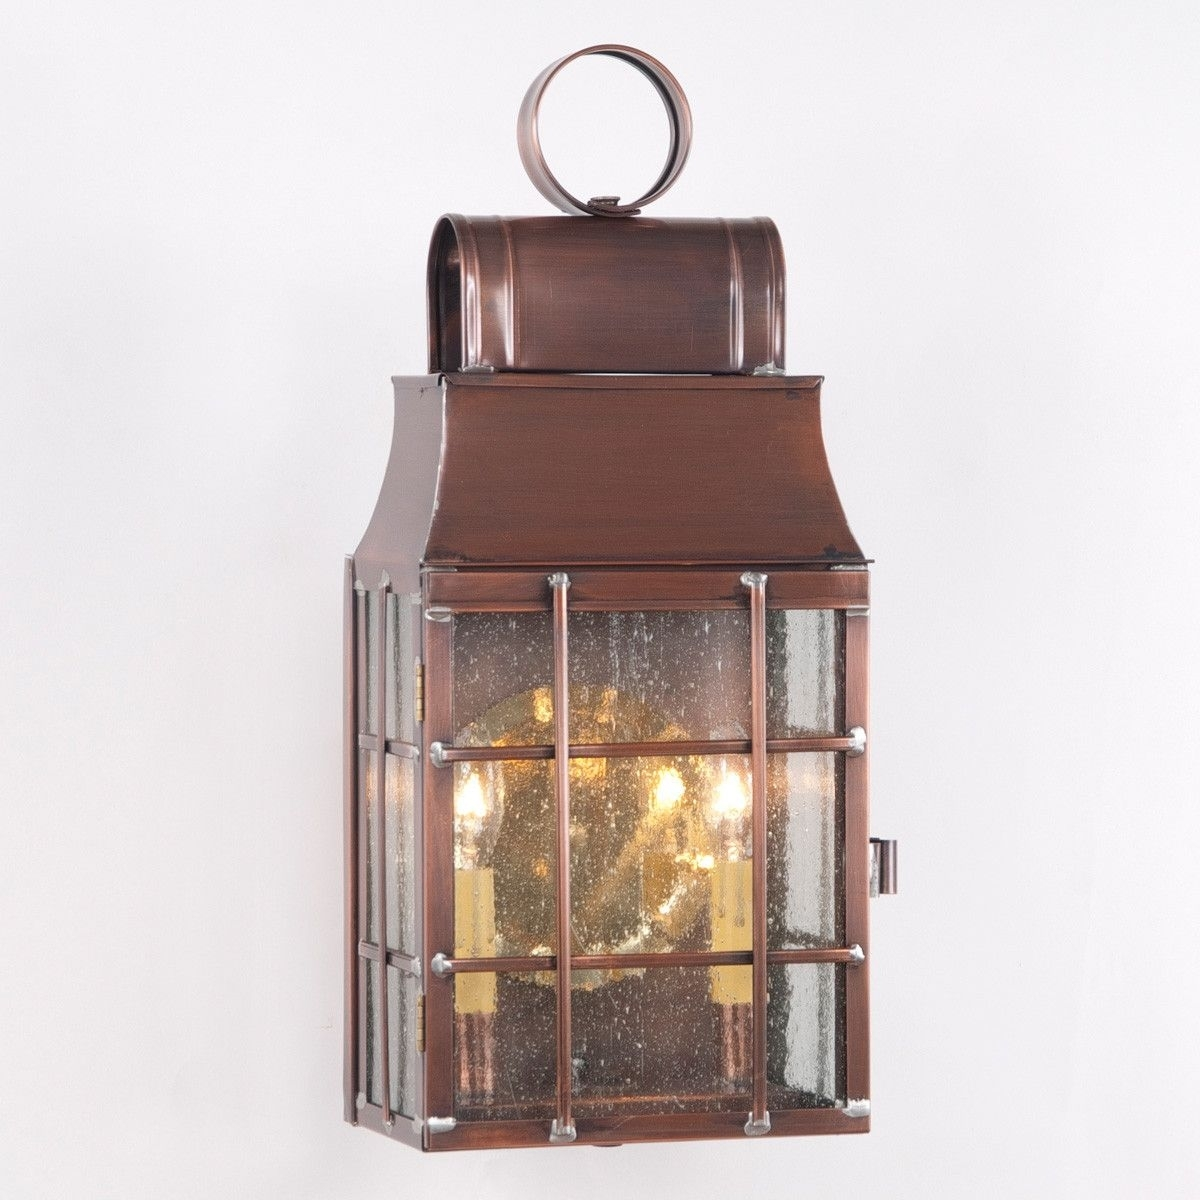 Popular Photo of Made In Usa Outdoor Wall Lighting